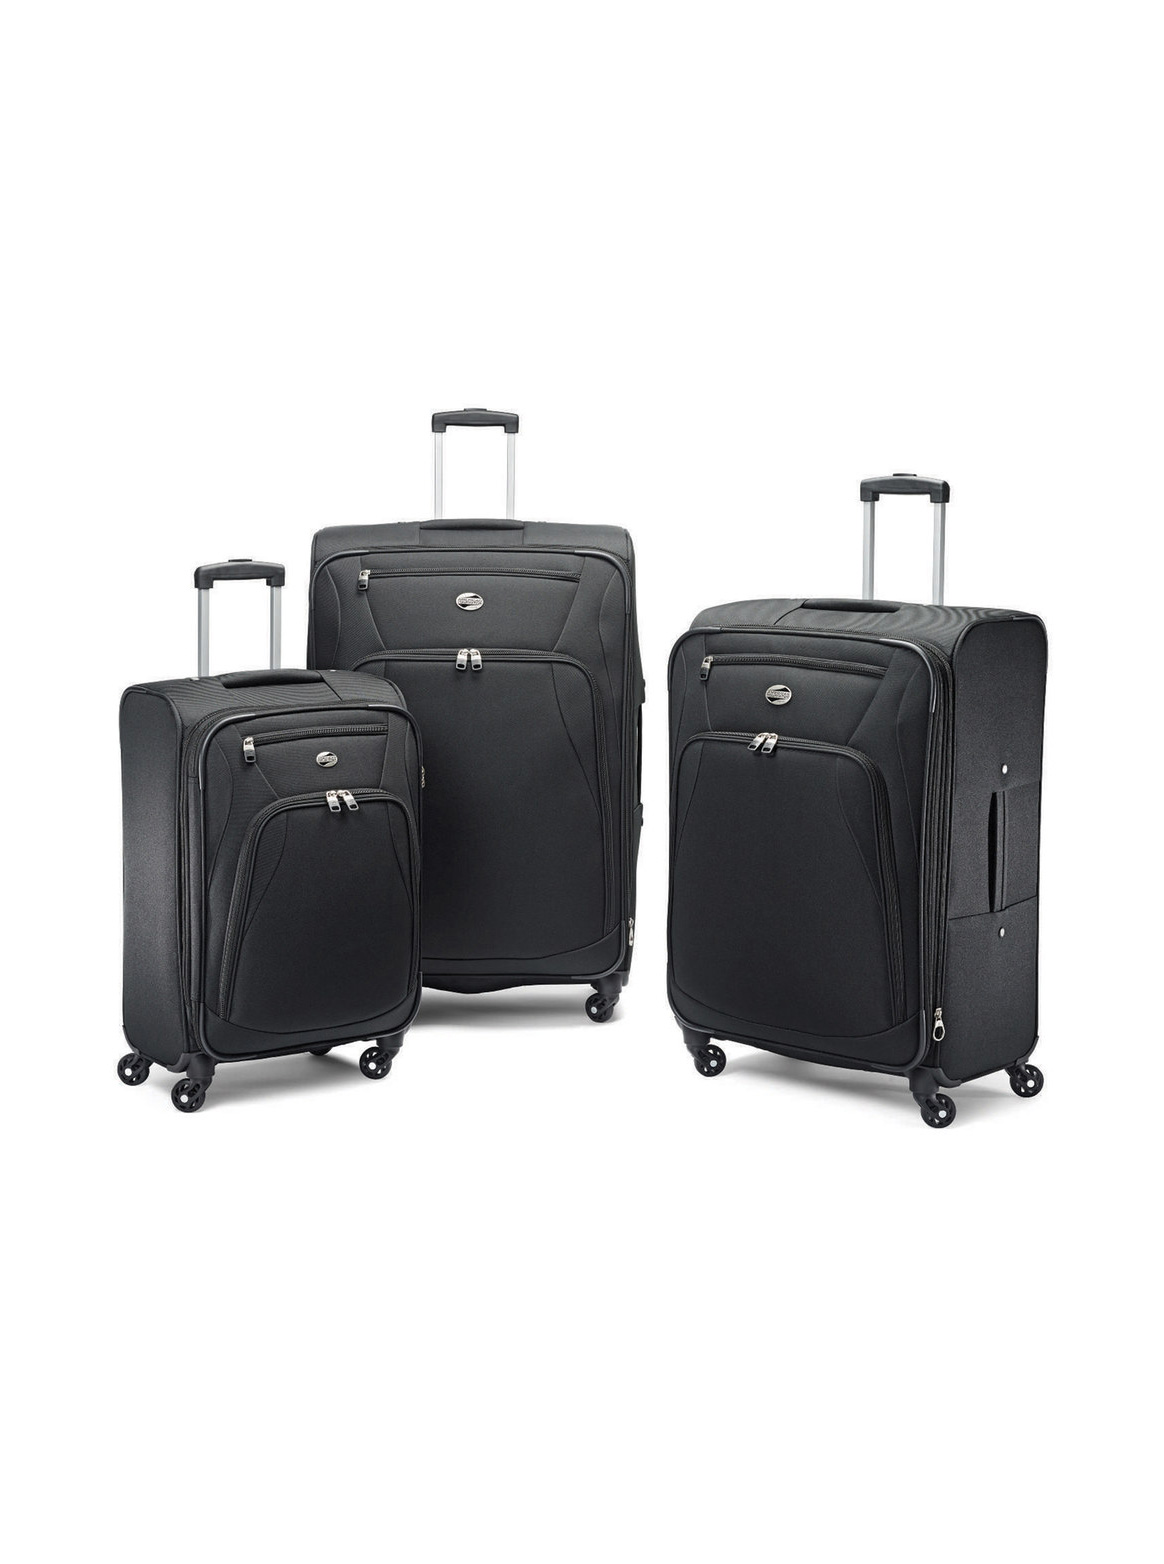 Kohl s Black Friday Luggage Deal Is Seriously Unbelievable   Real Simple 6a847f7351